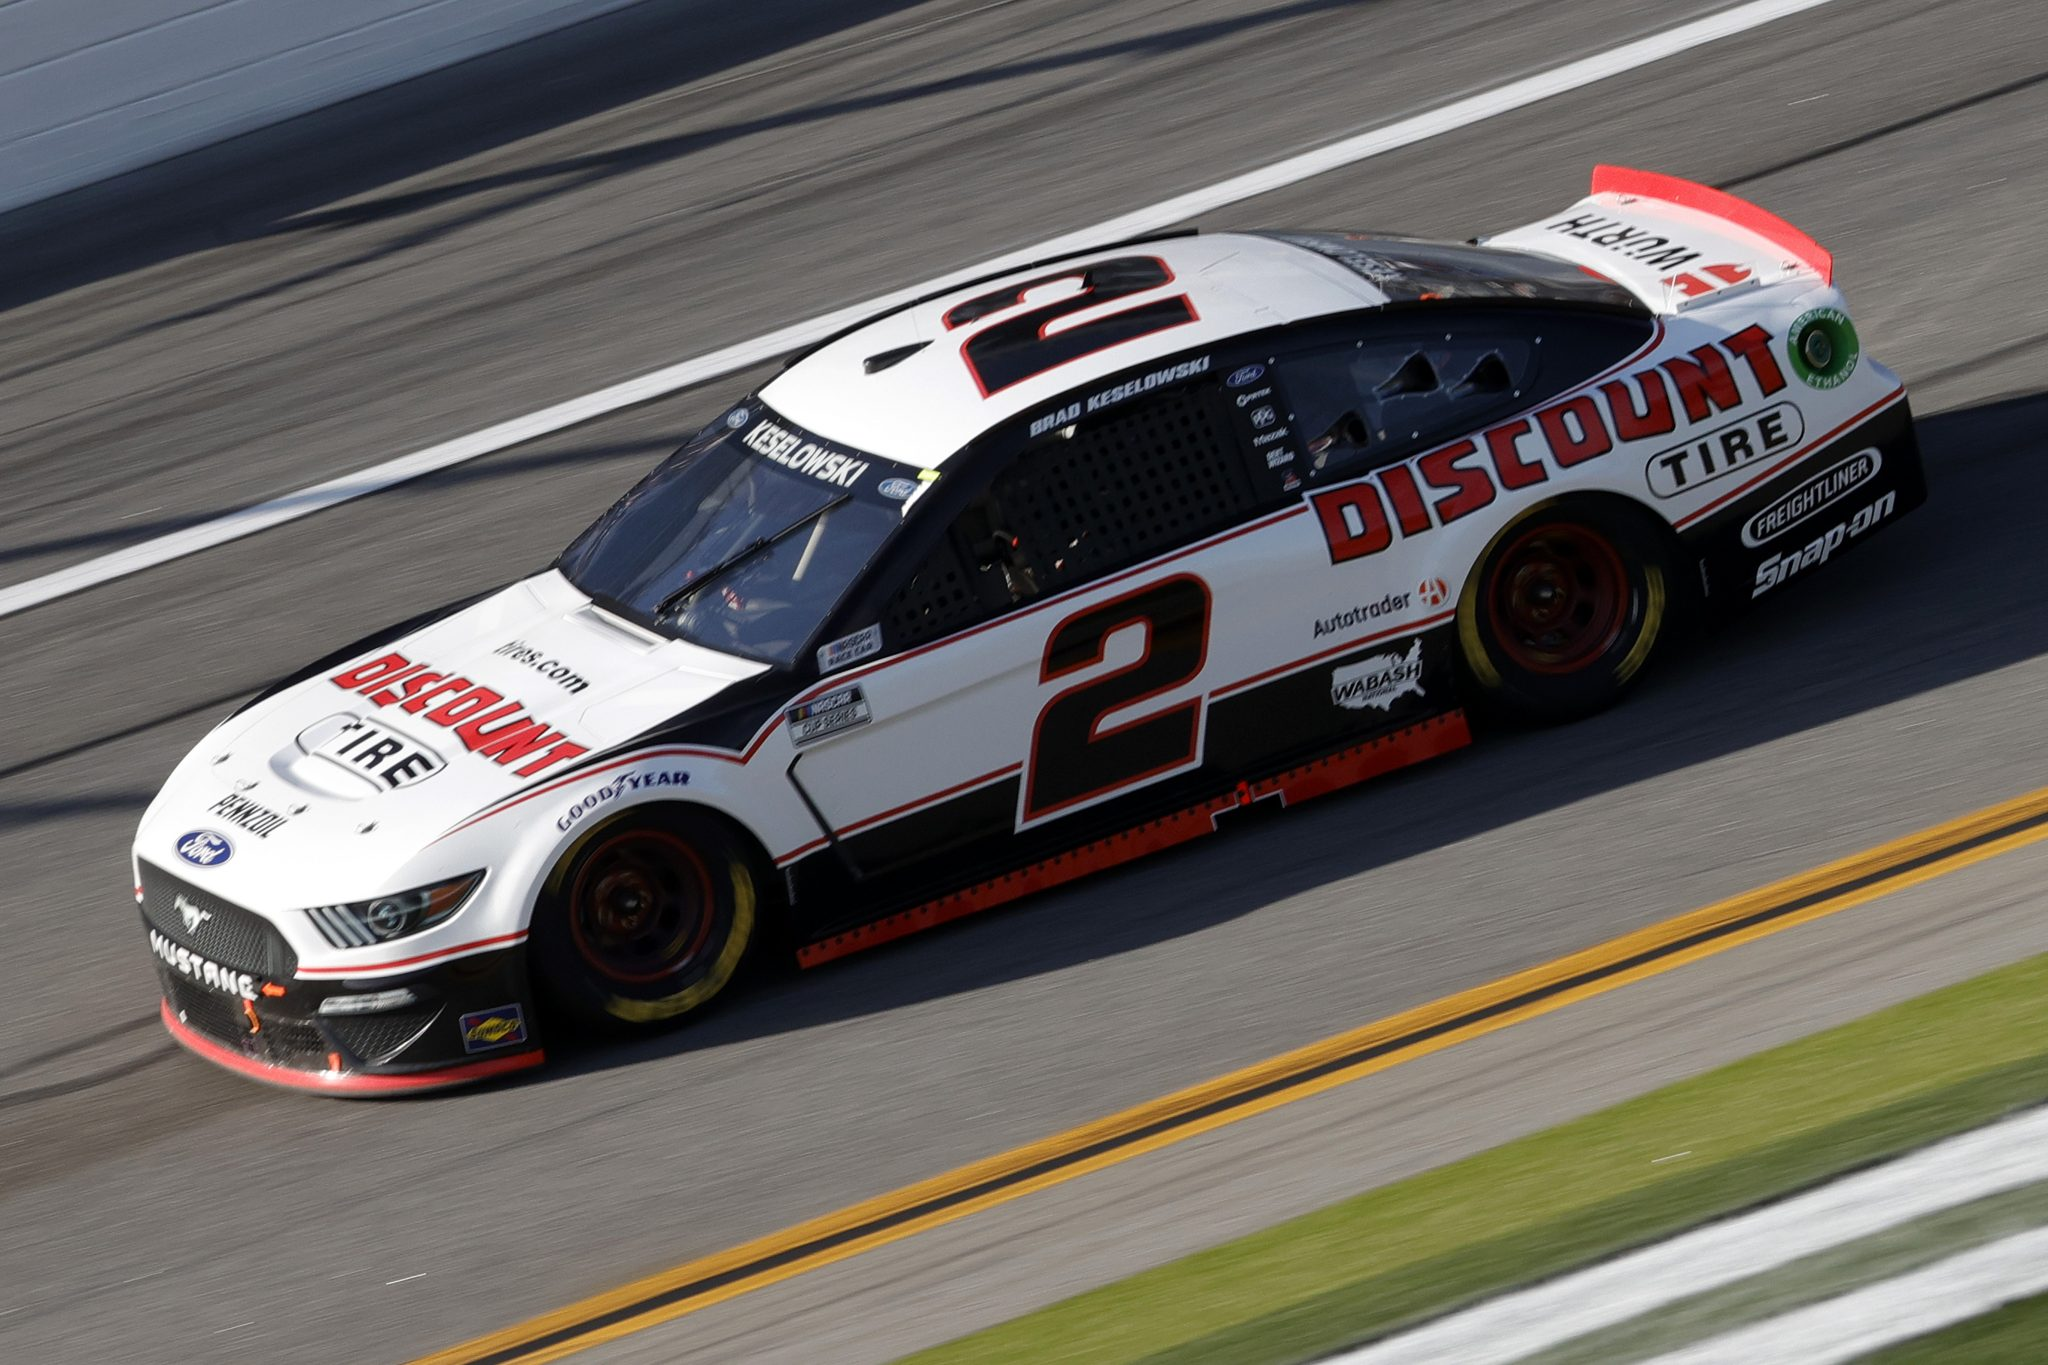 DAYTONA BEACH, FLORIDA - FEBRUARY 21: Brad Keselowski, driver of the #2 Discount Tire Ford, drives during the NASCAR Cup Series O'Reilly Auto Parts 253 at Daytona International Speedway on February 21, 2021 in Daytona Beach, Florida. (Photo by Chris Graythen/Getty Images) | Getty Images